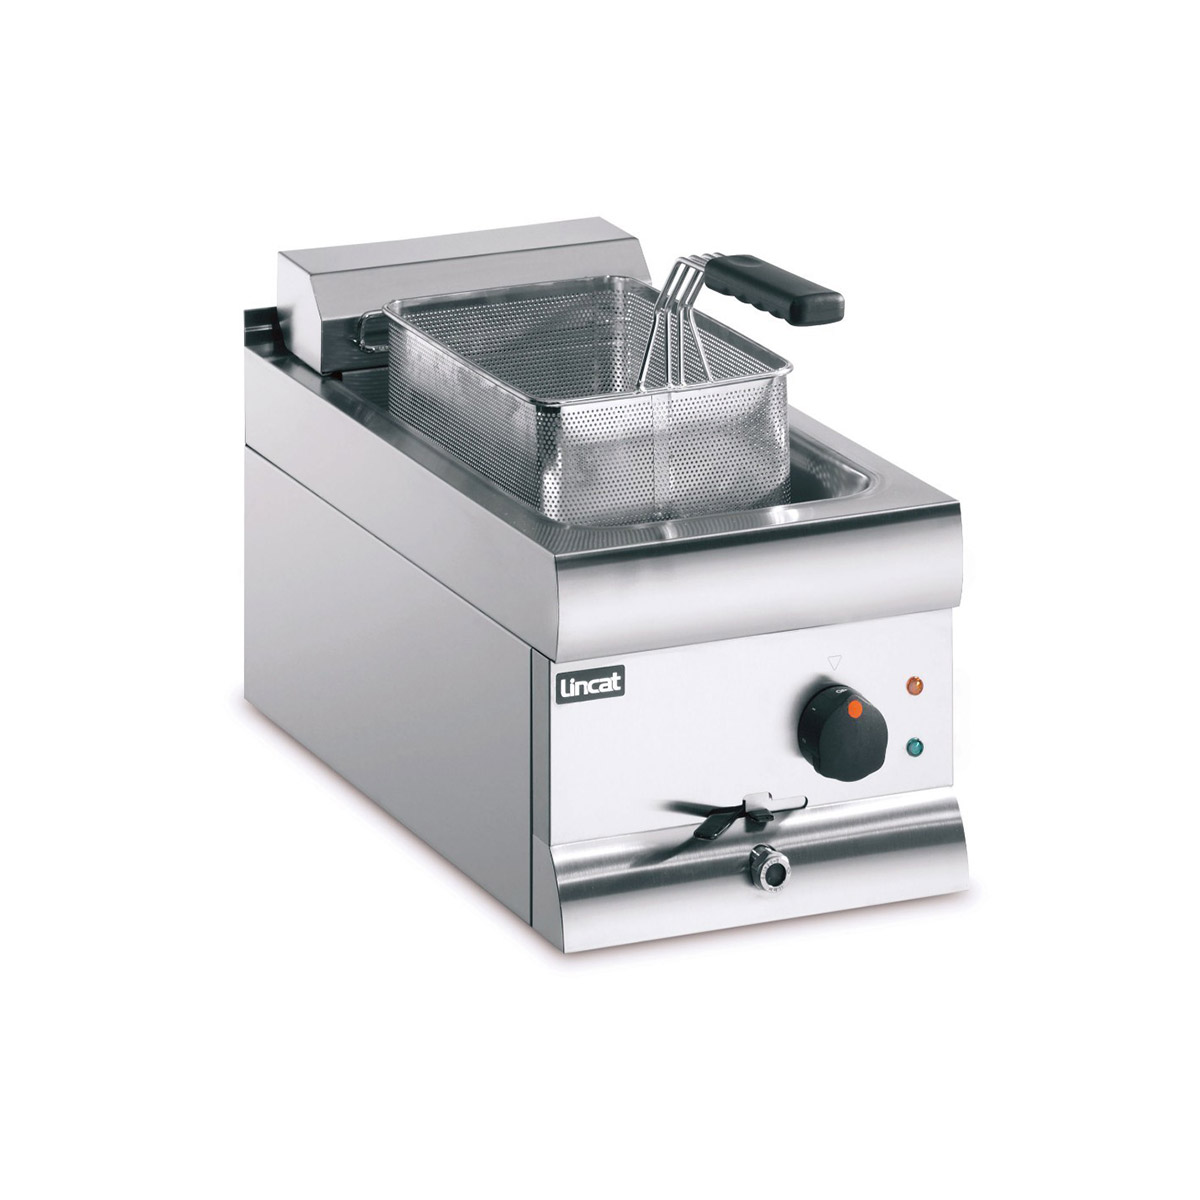 PB33 - Lincat Silverlink 600 Electric Counter-top Pasta Cooker - Single Tank - W 300 mm - 3.0 kW